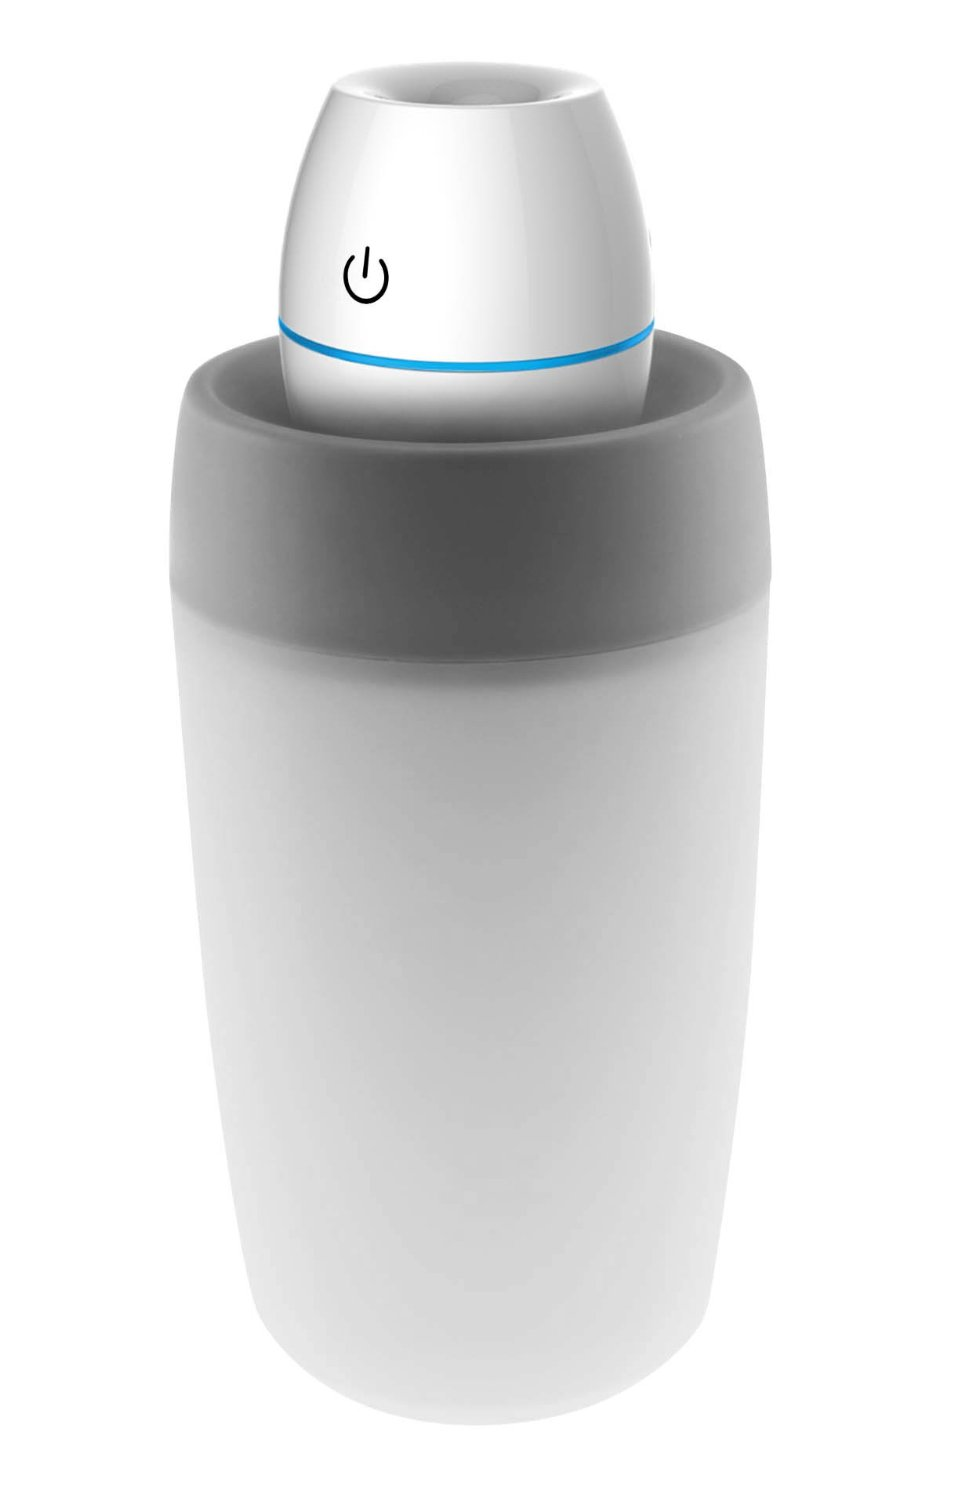 Crane Ultrasonic Cool Mist Travel Humidifier Review 2018